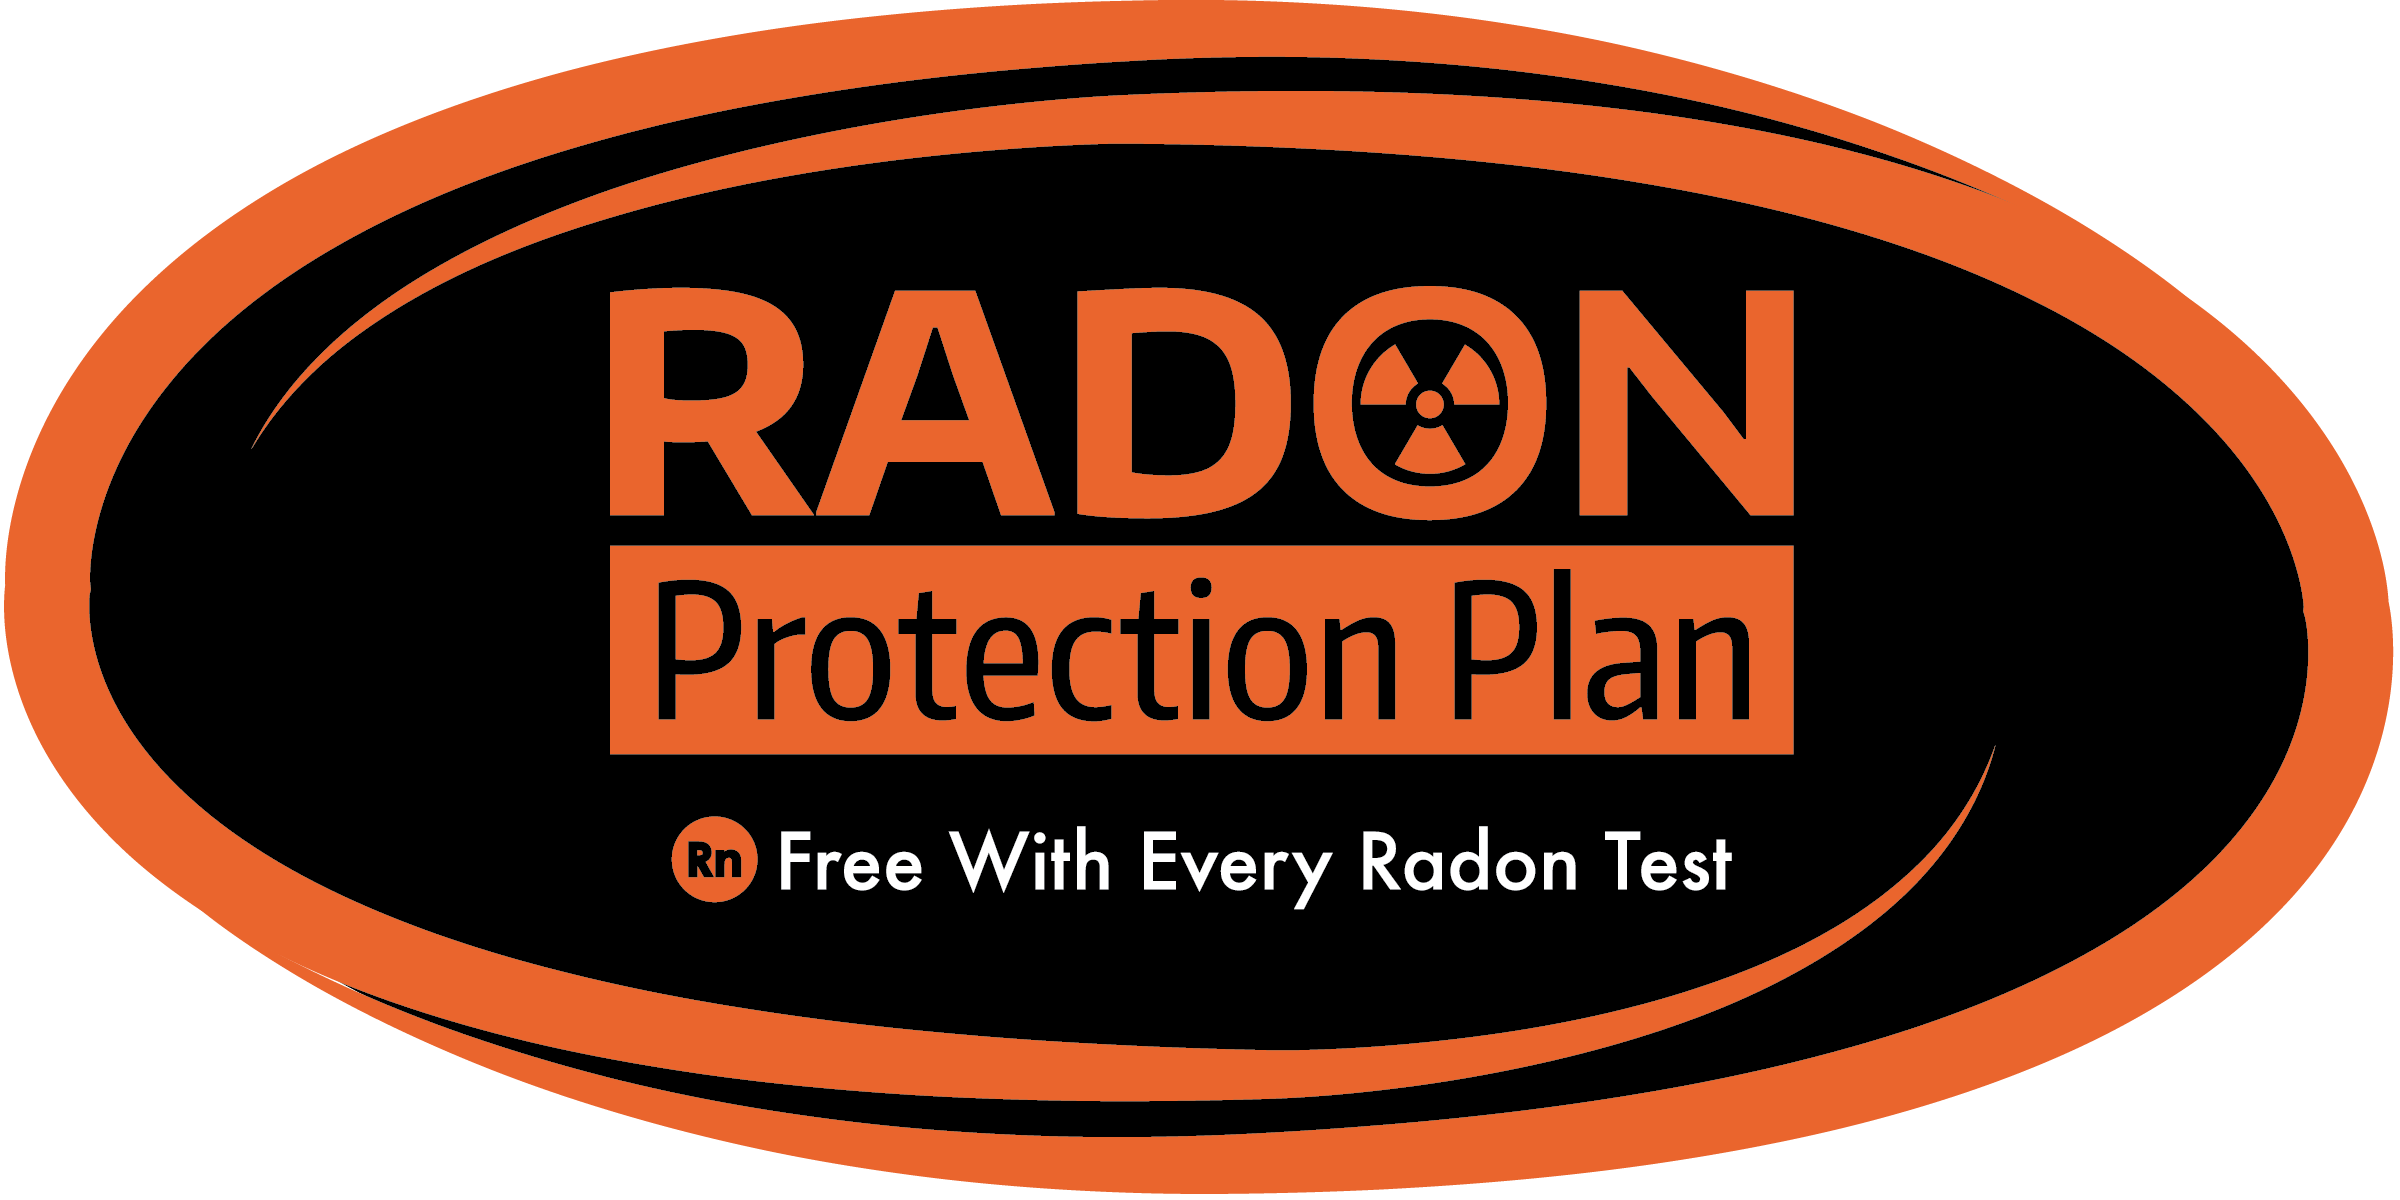 Radon Protection Plan